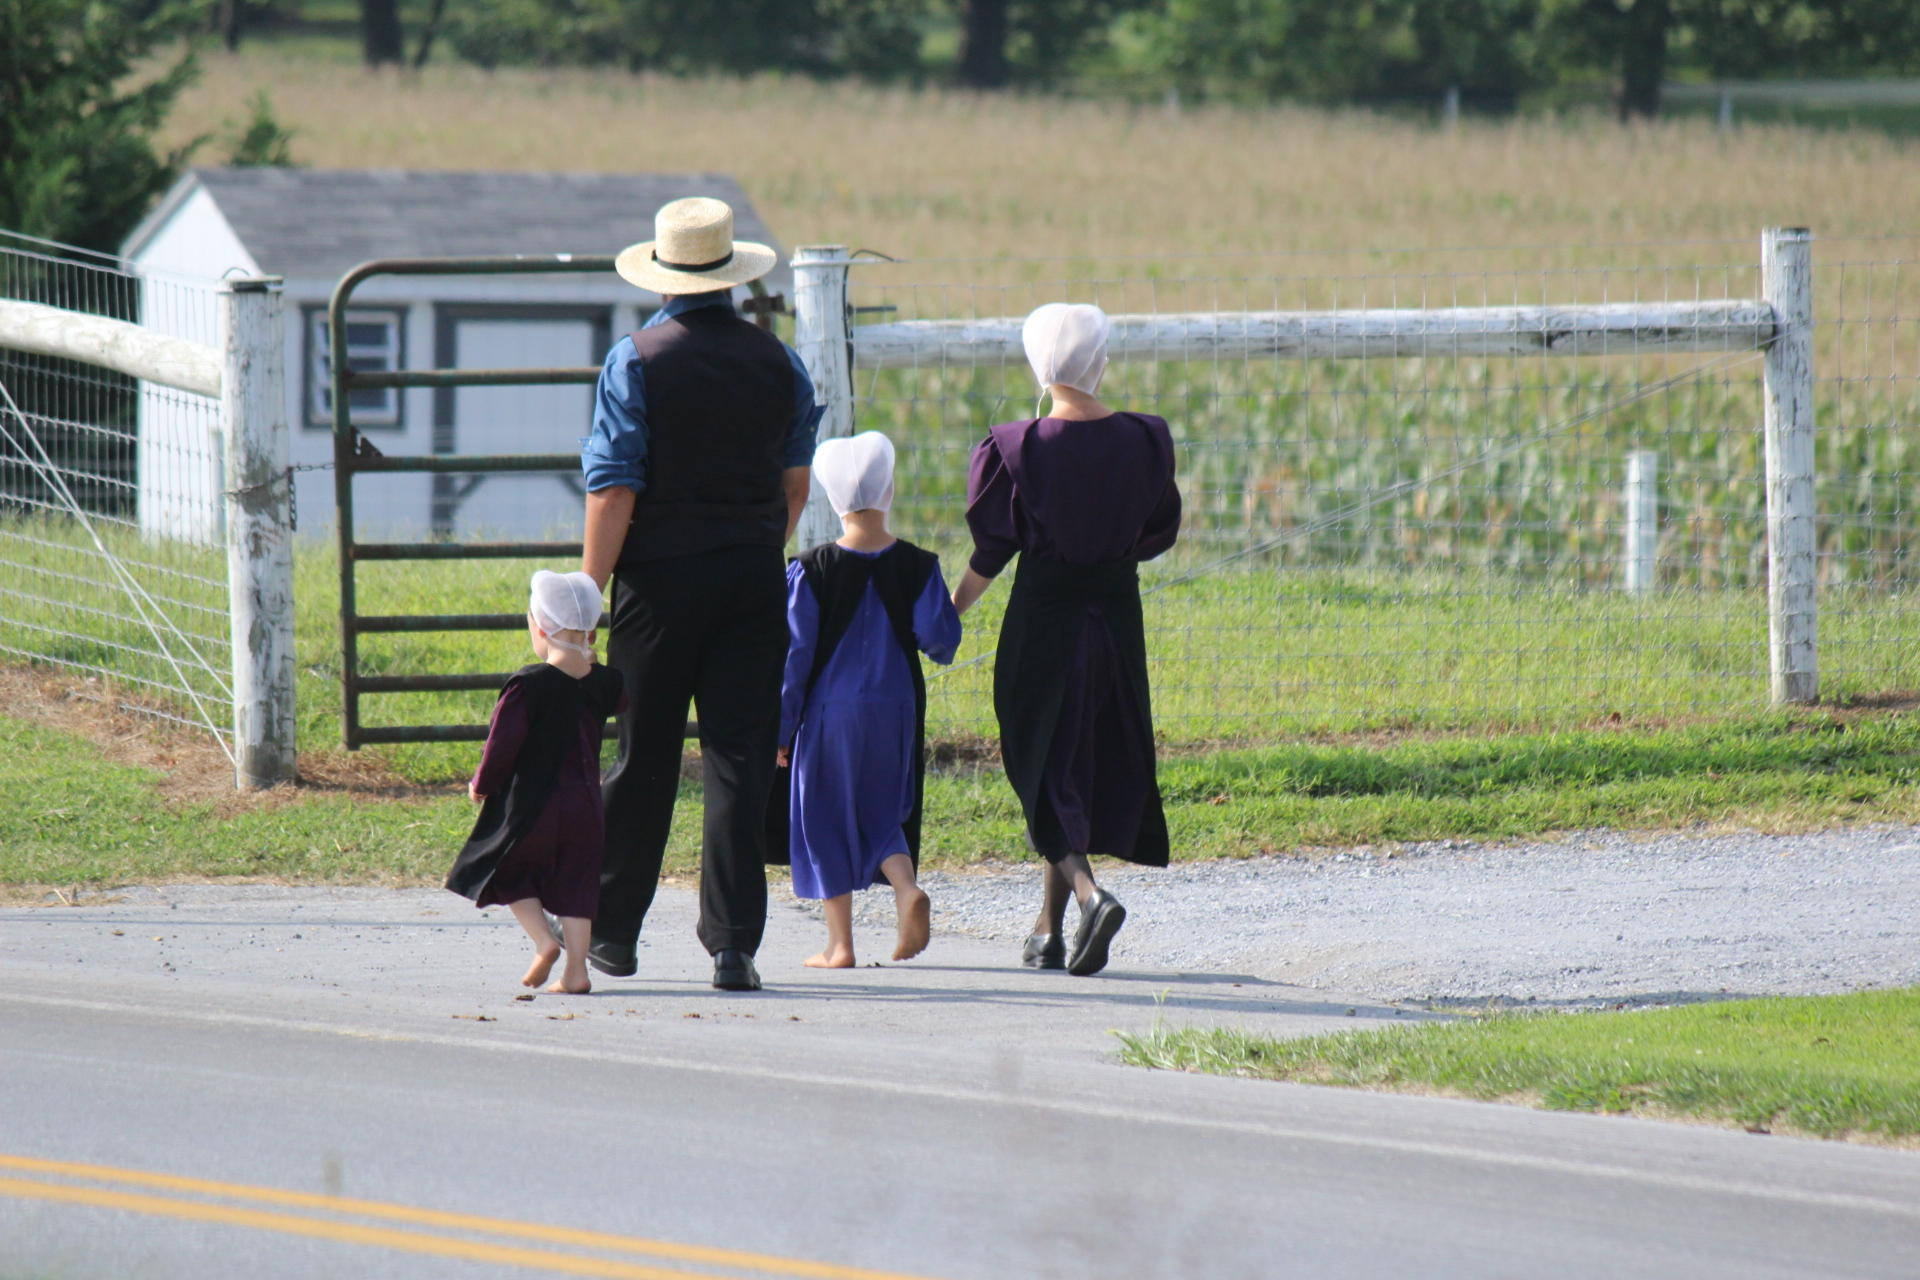 amish culture Though most of these revelations were true, the original breaking amish cast,  who are now all living in the english world, continues to defend.